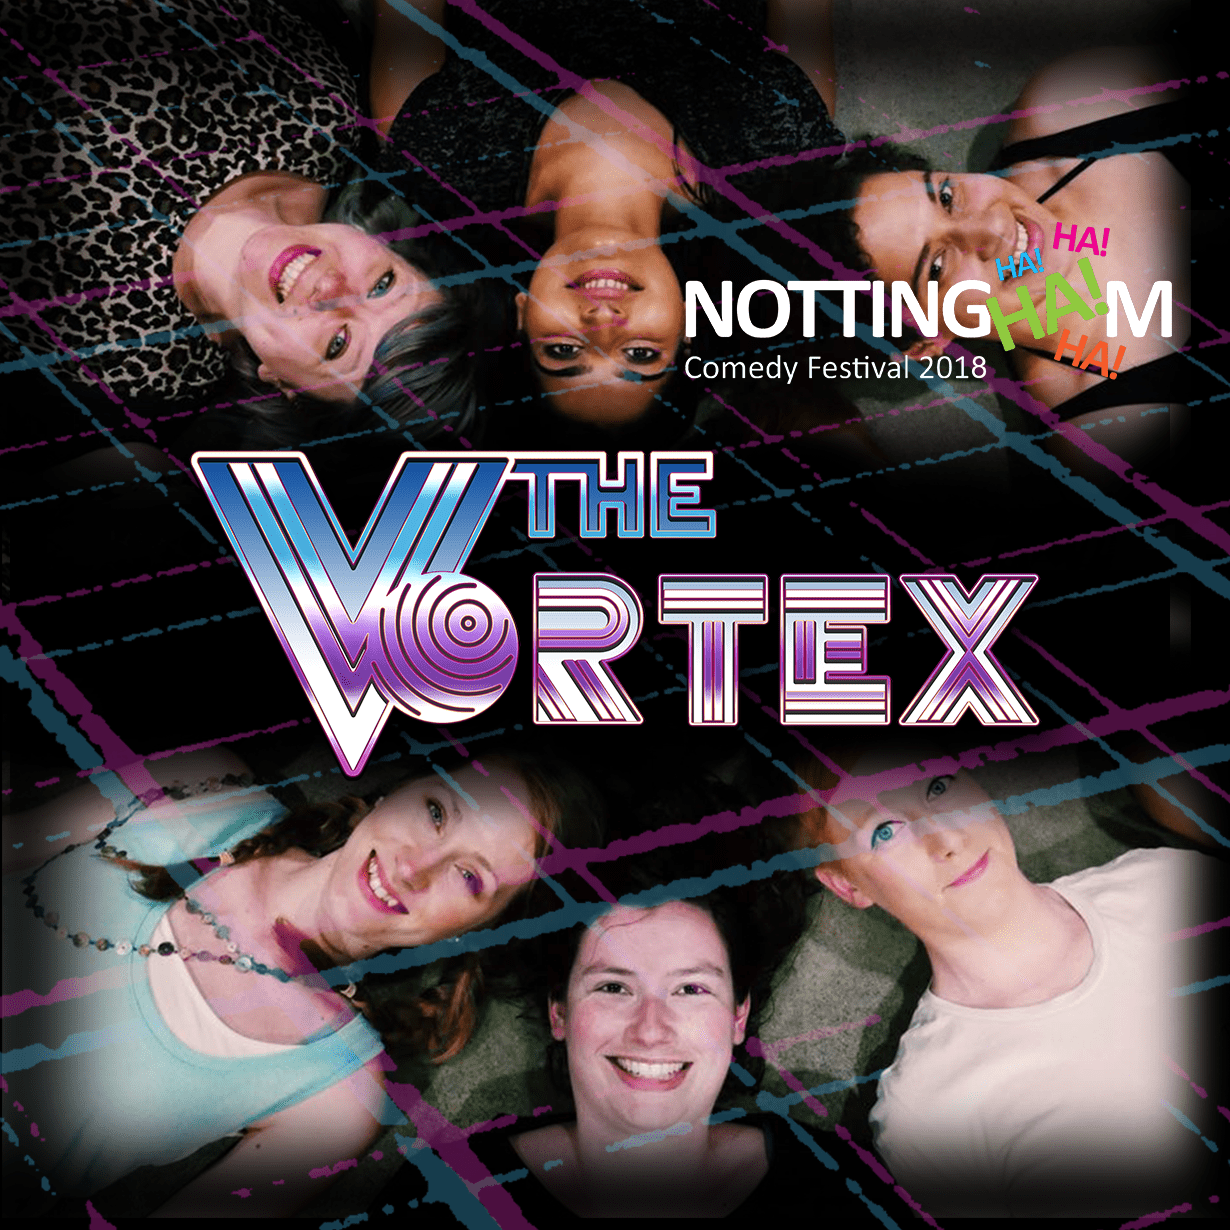 The Vortex at Nottingham Comedy Festival